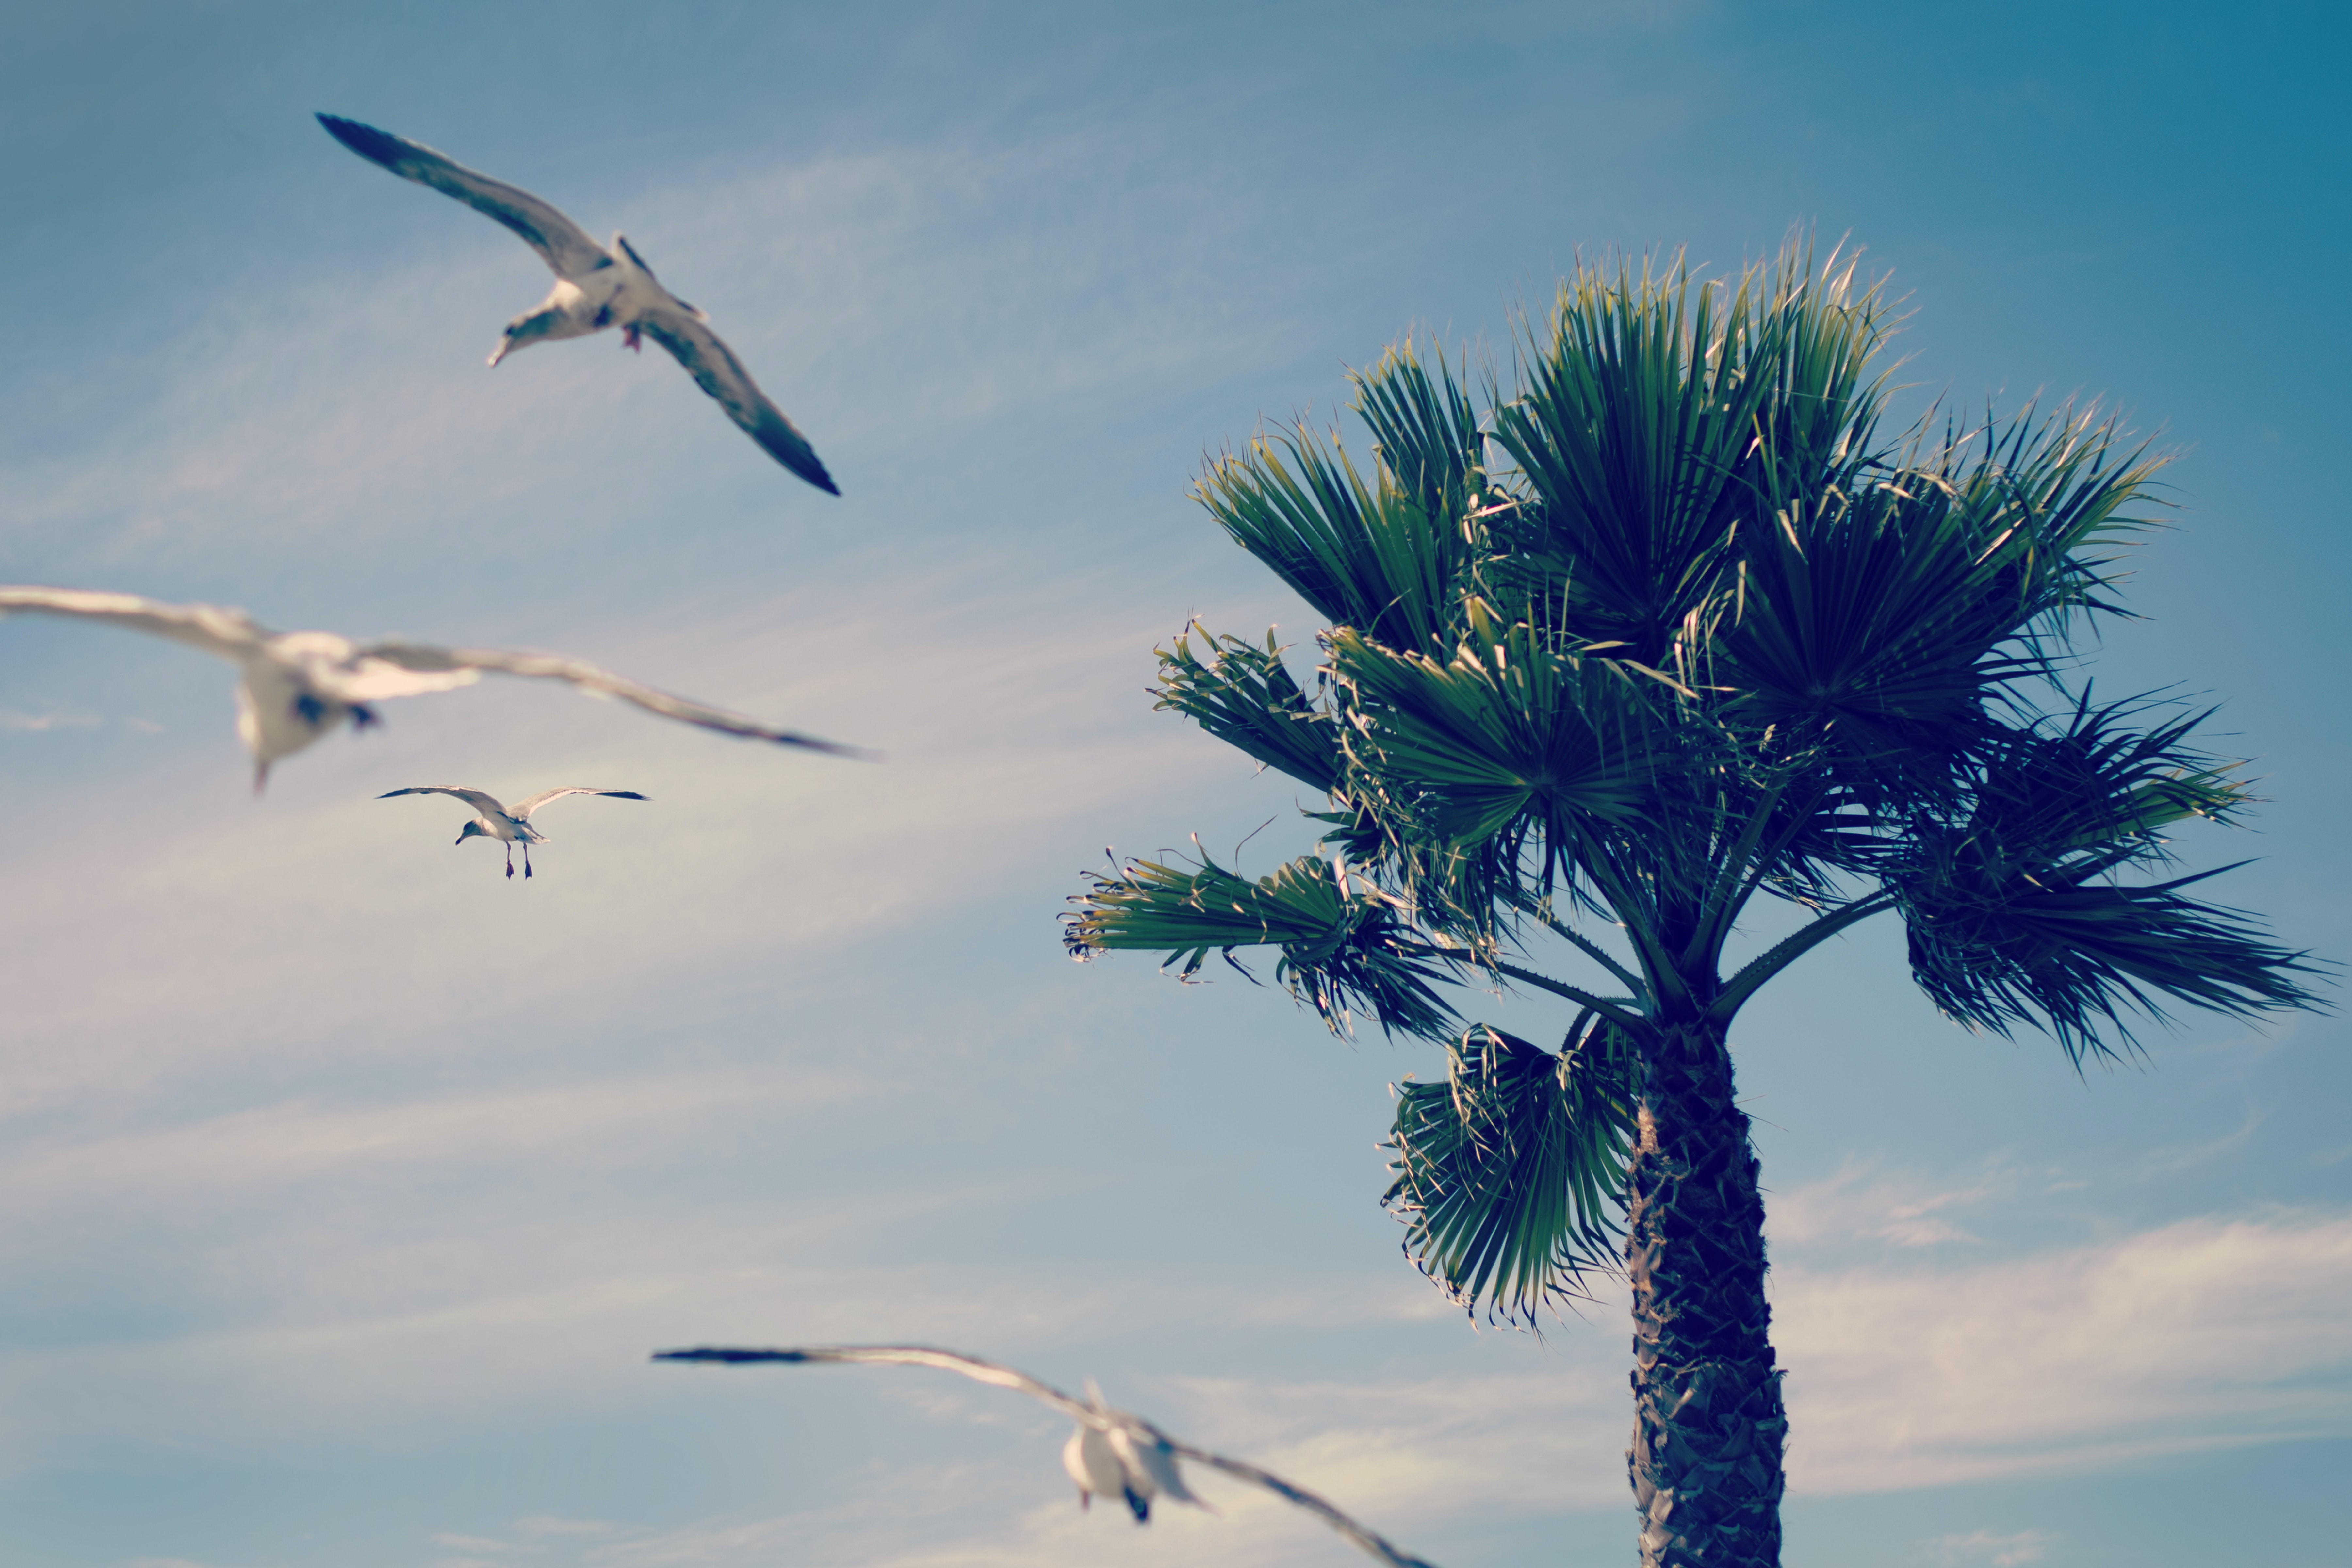 Seagulls flying by a palm tree at Shell Beach